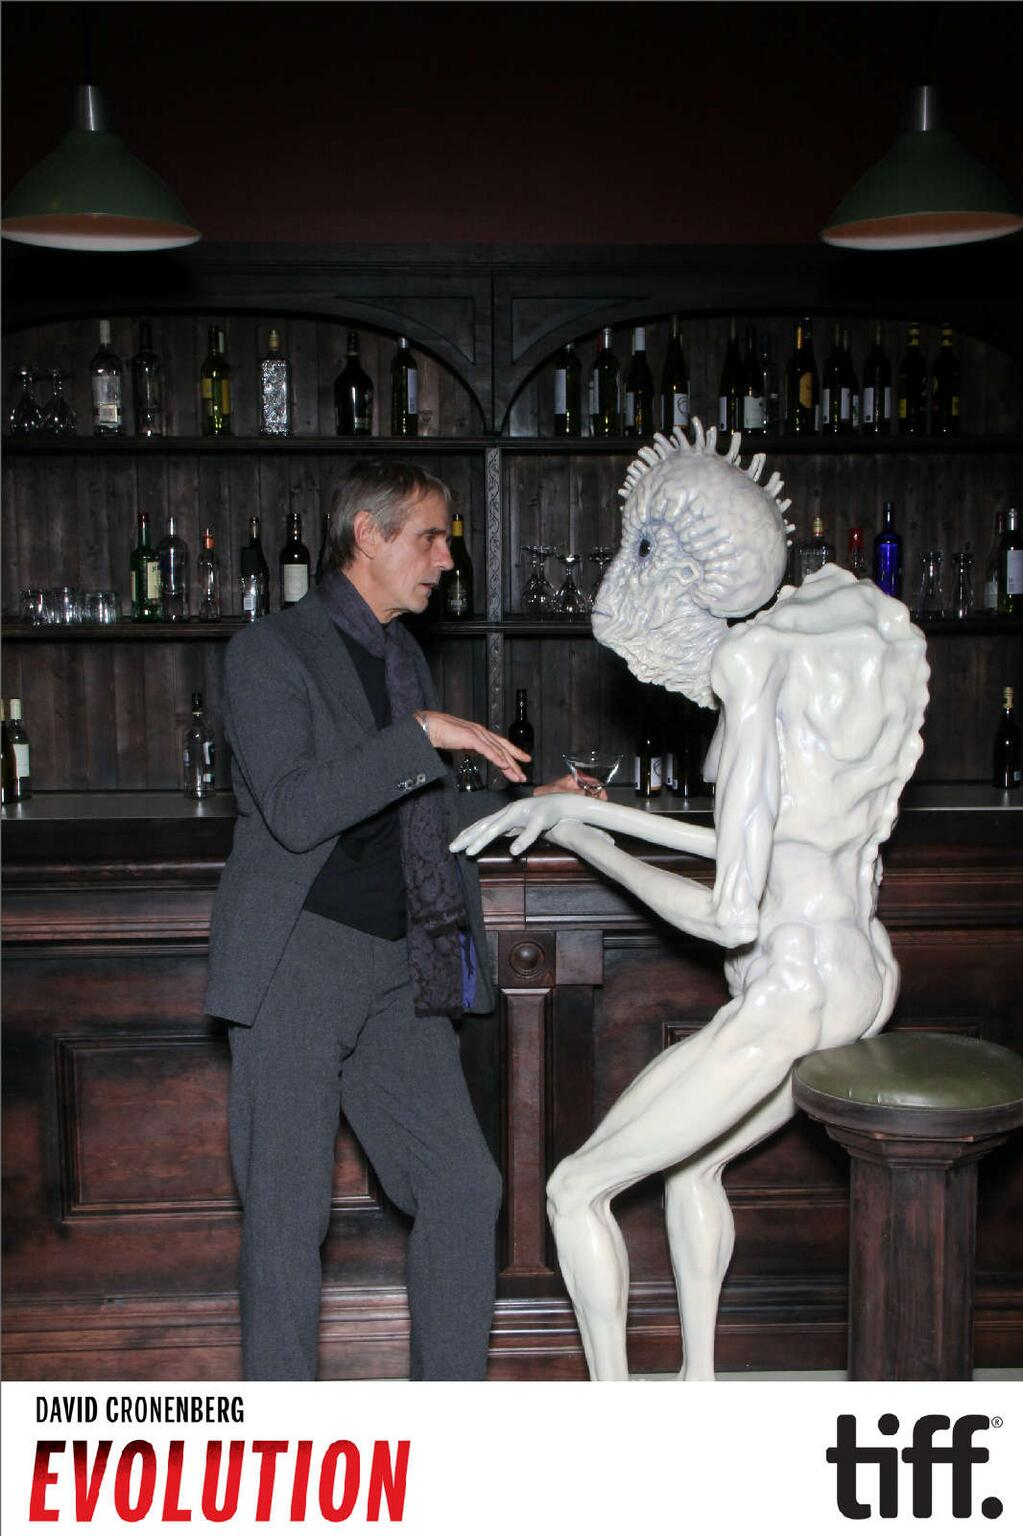 Noah Cowan @noahlightbox  Jeremy Irons and the mugwump share a drink and a laugh. David Cronenberg : Evolution is now officially open!